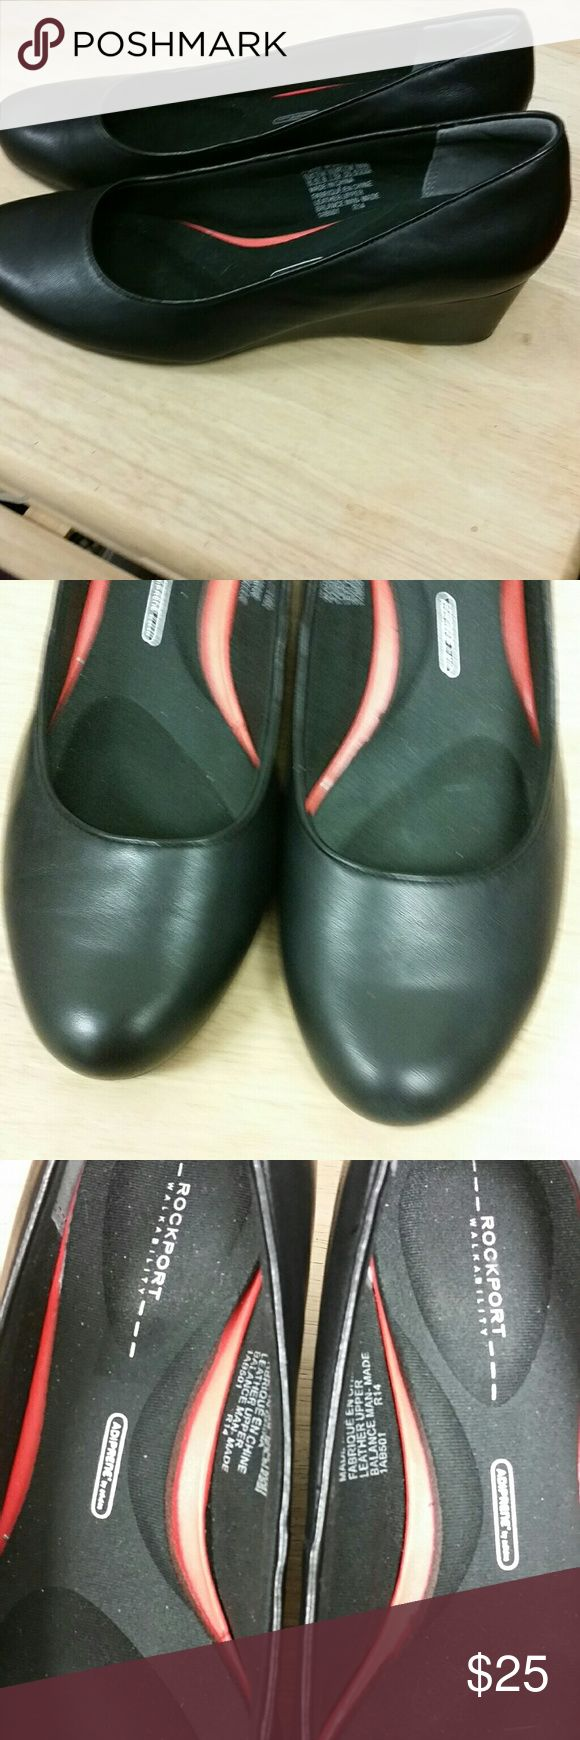 Rockport wedges Excellent condition! Rockport Shoes Wedges